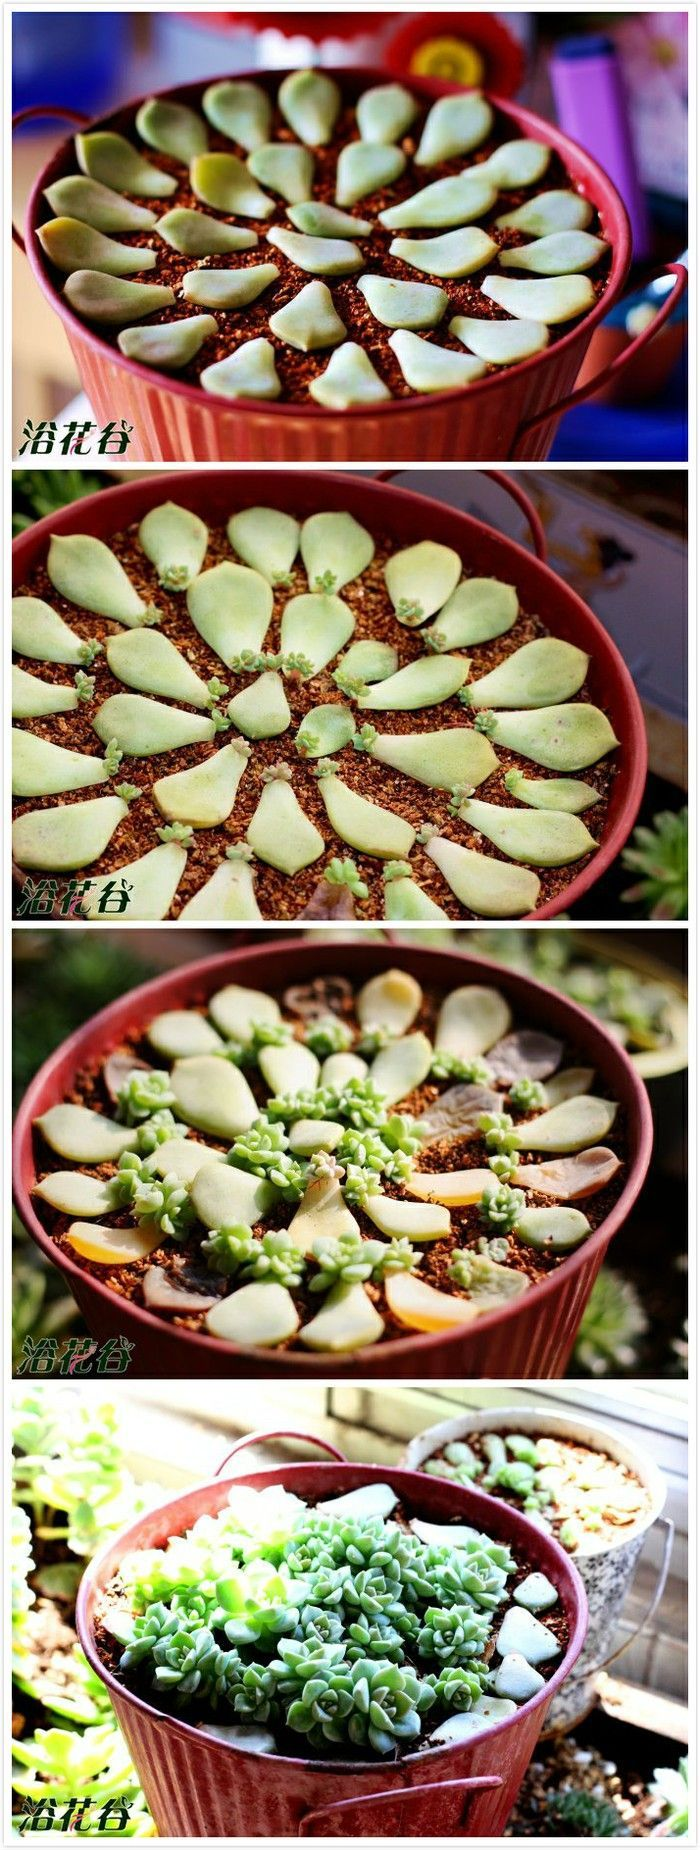 How to propagate succulents. - Green Secrets